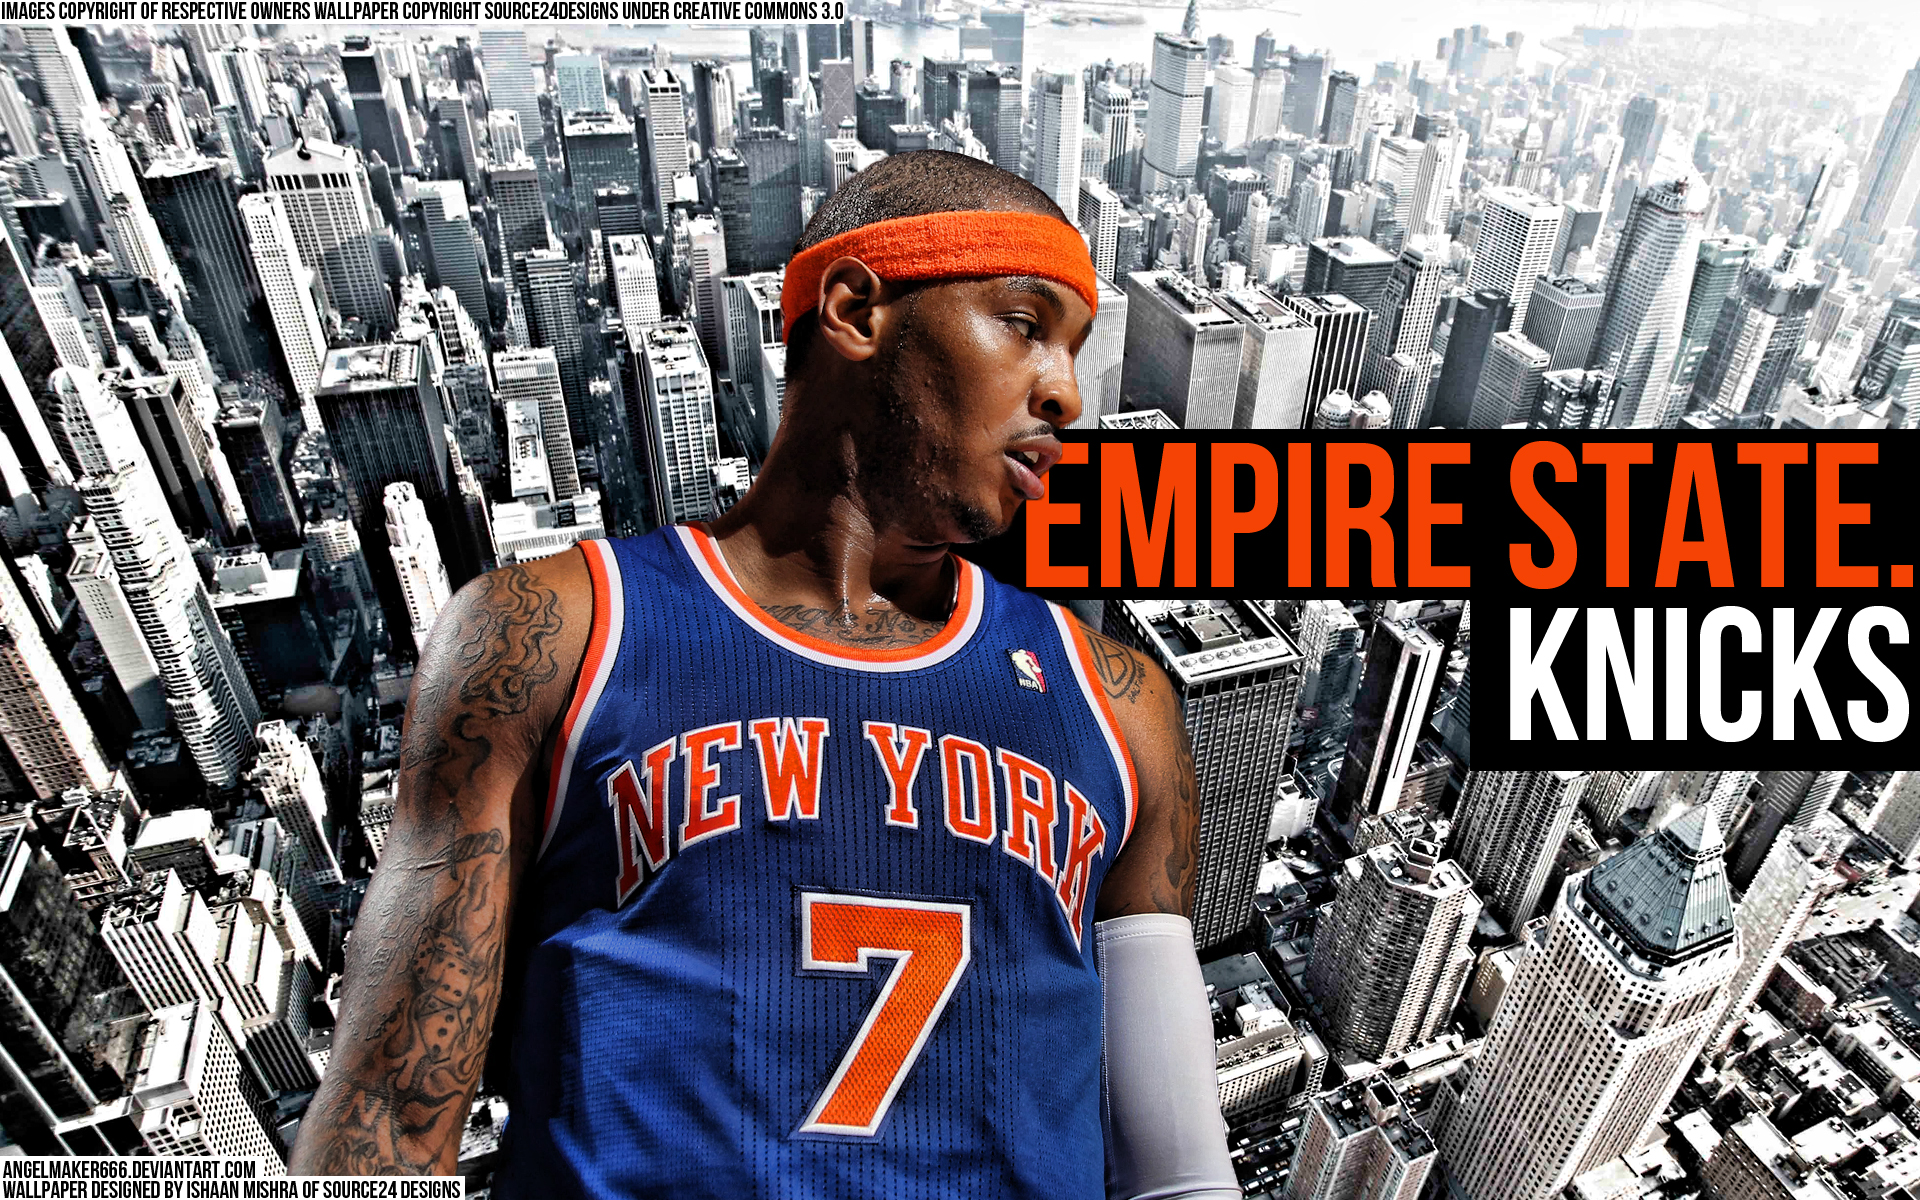 The New York KNICKS Desktop Wallpaper Collection | Sports Geekery